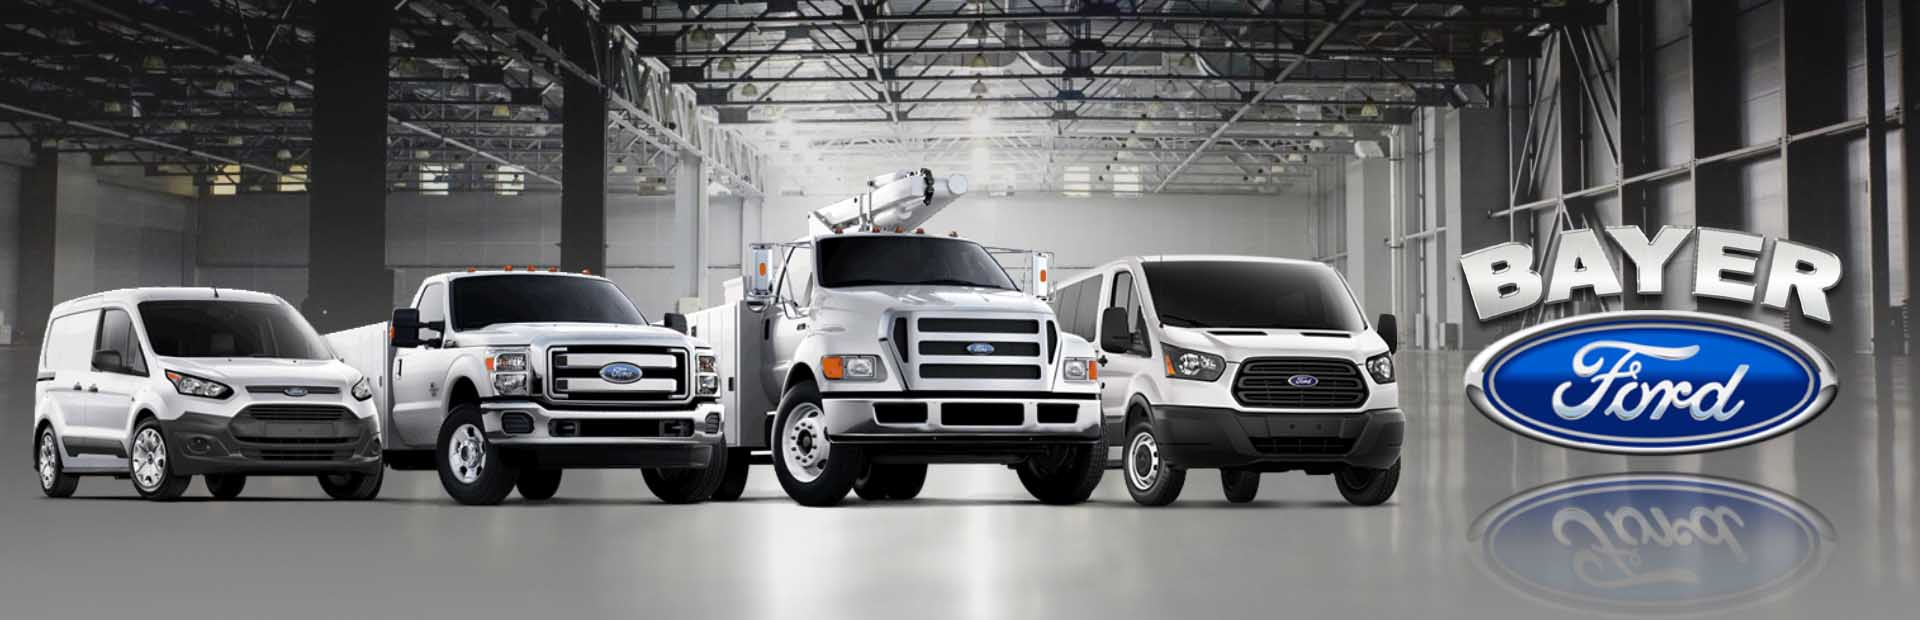 Bayer Ford Commercial Vehicles